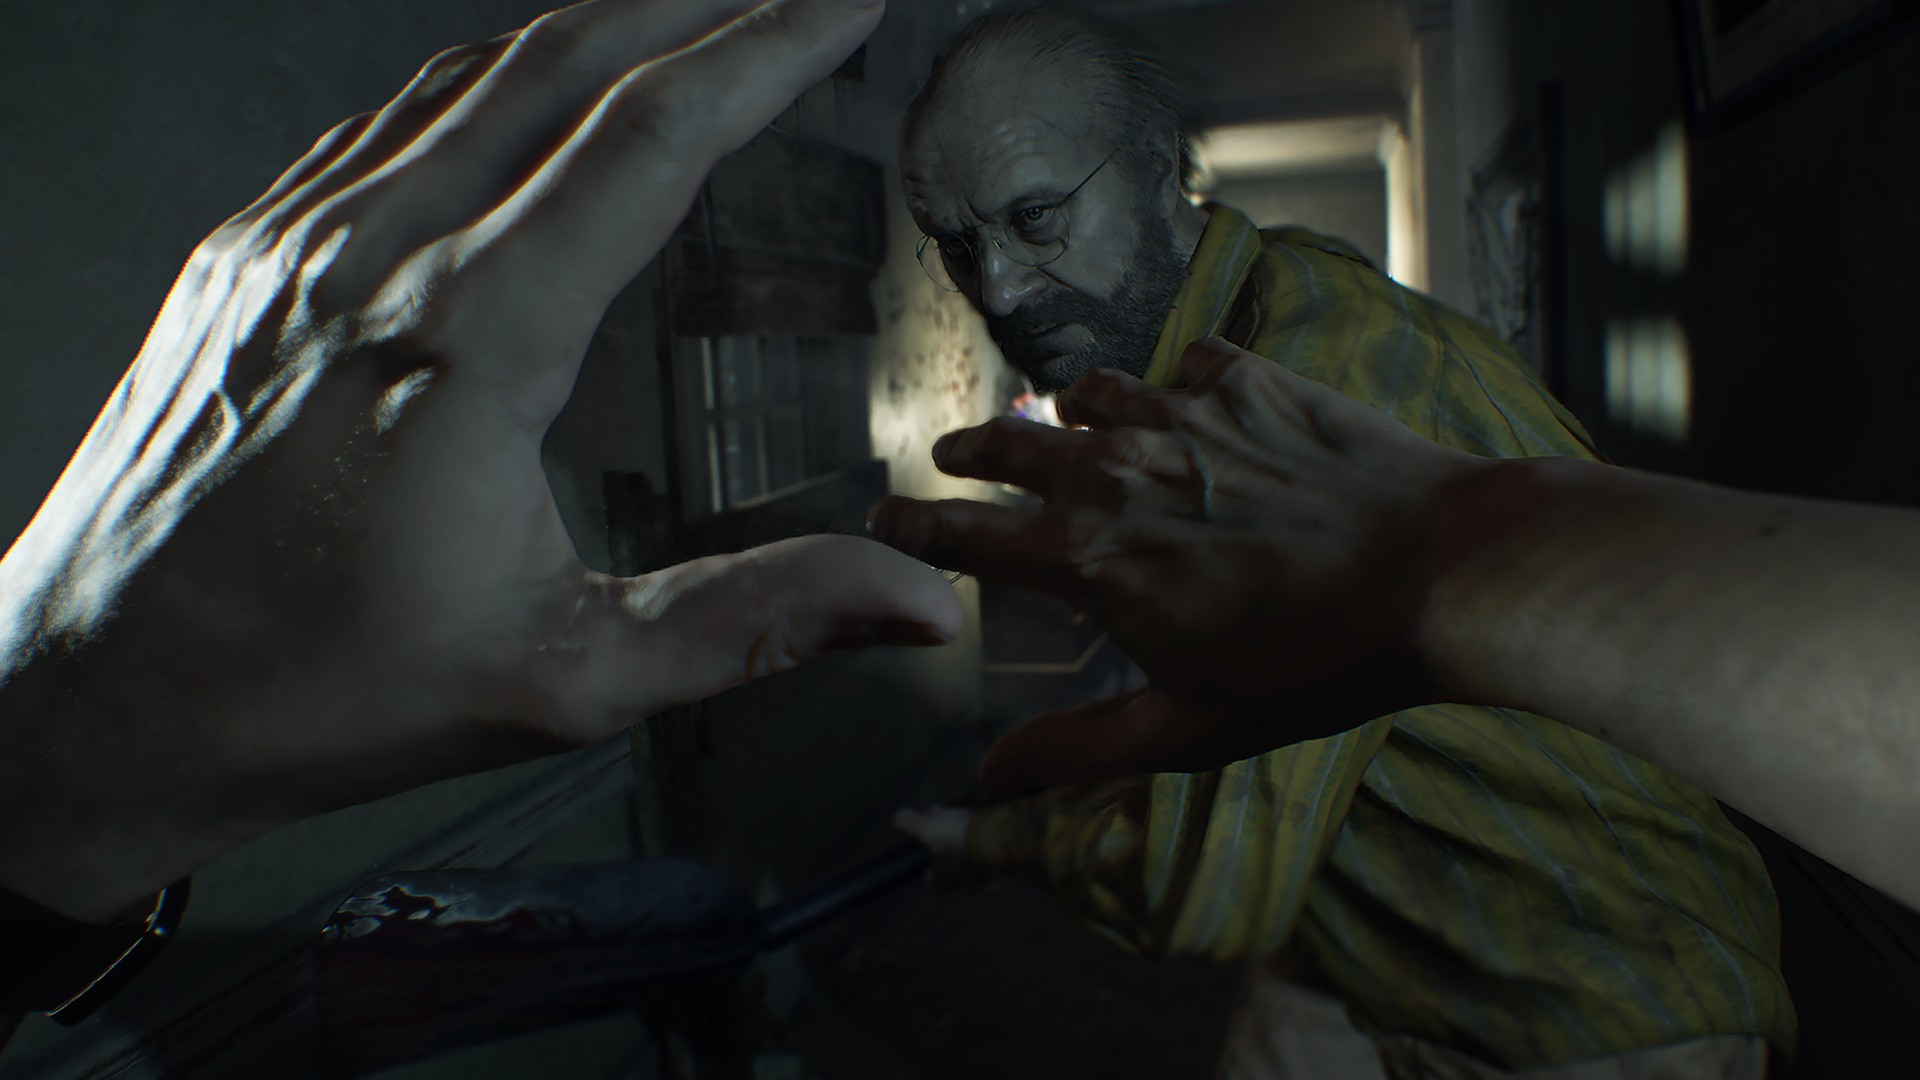 Capcom is working on 'numerous' unannounced titles